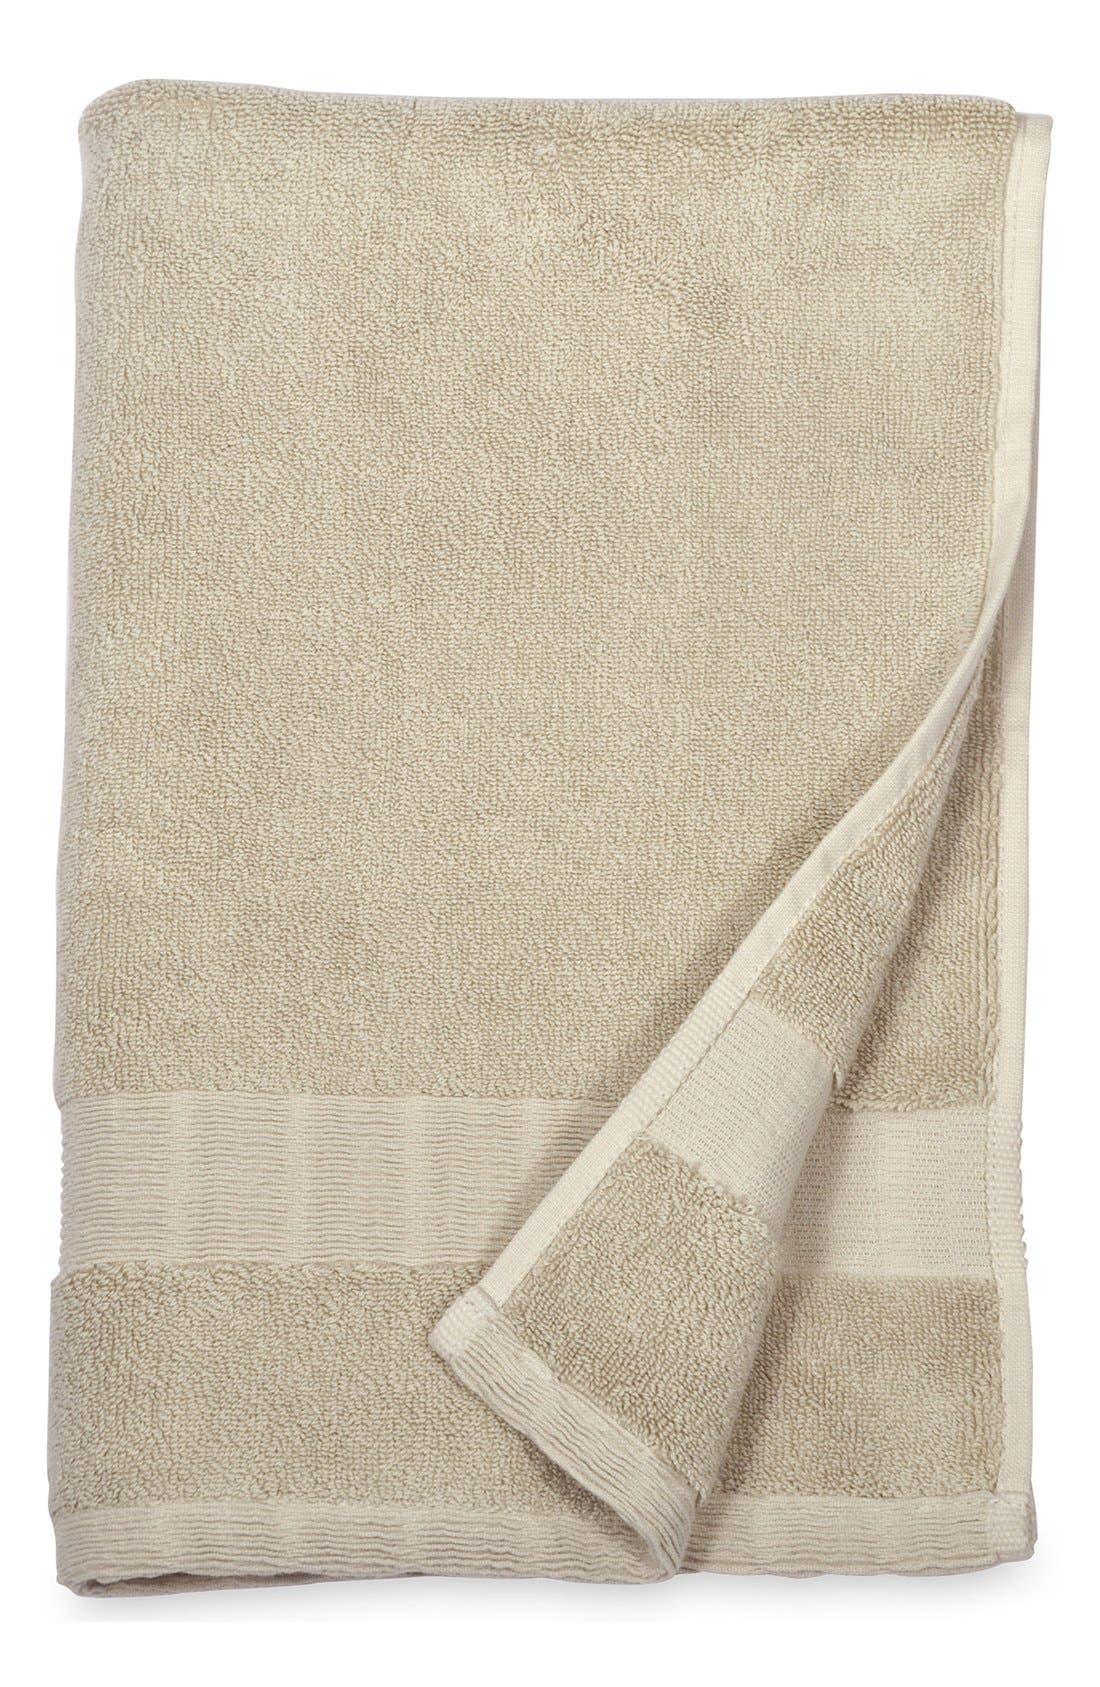 DKNY Mercer Hand Towel